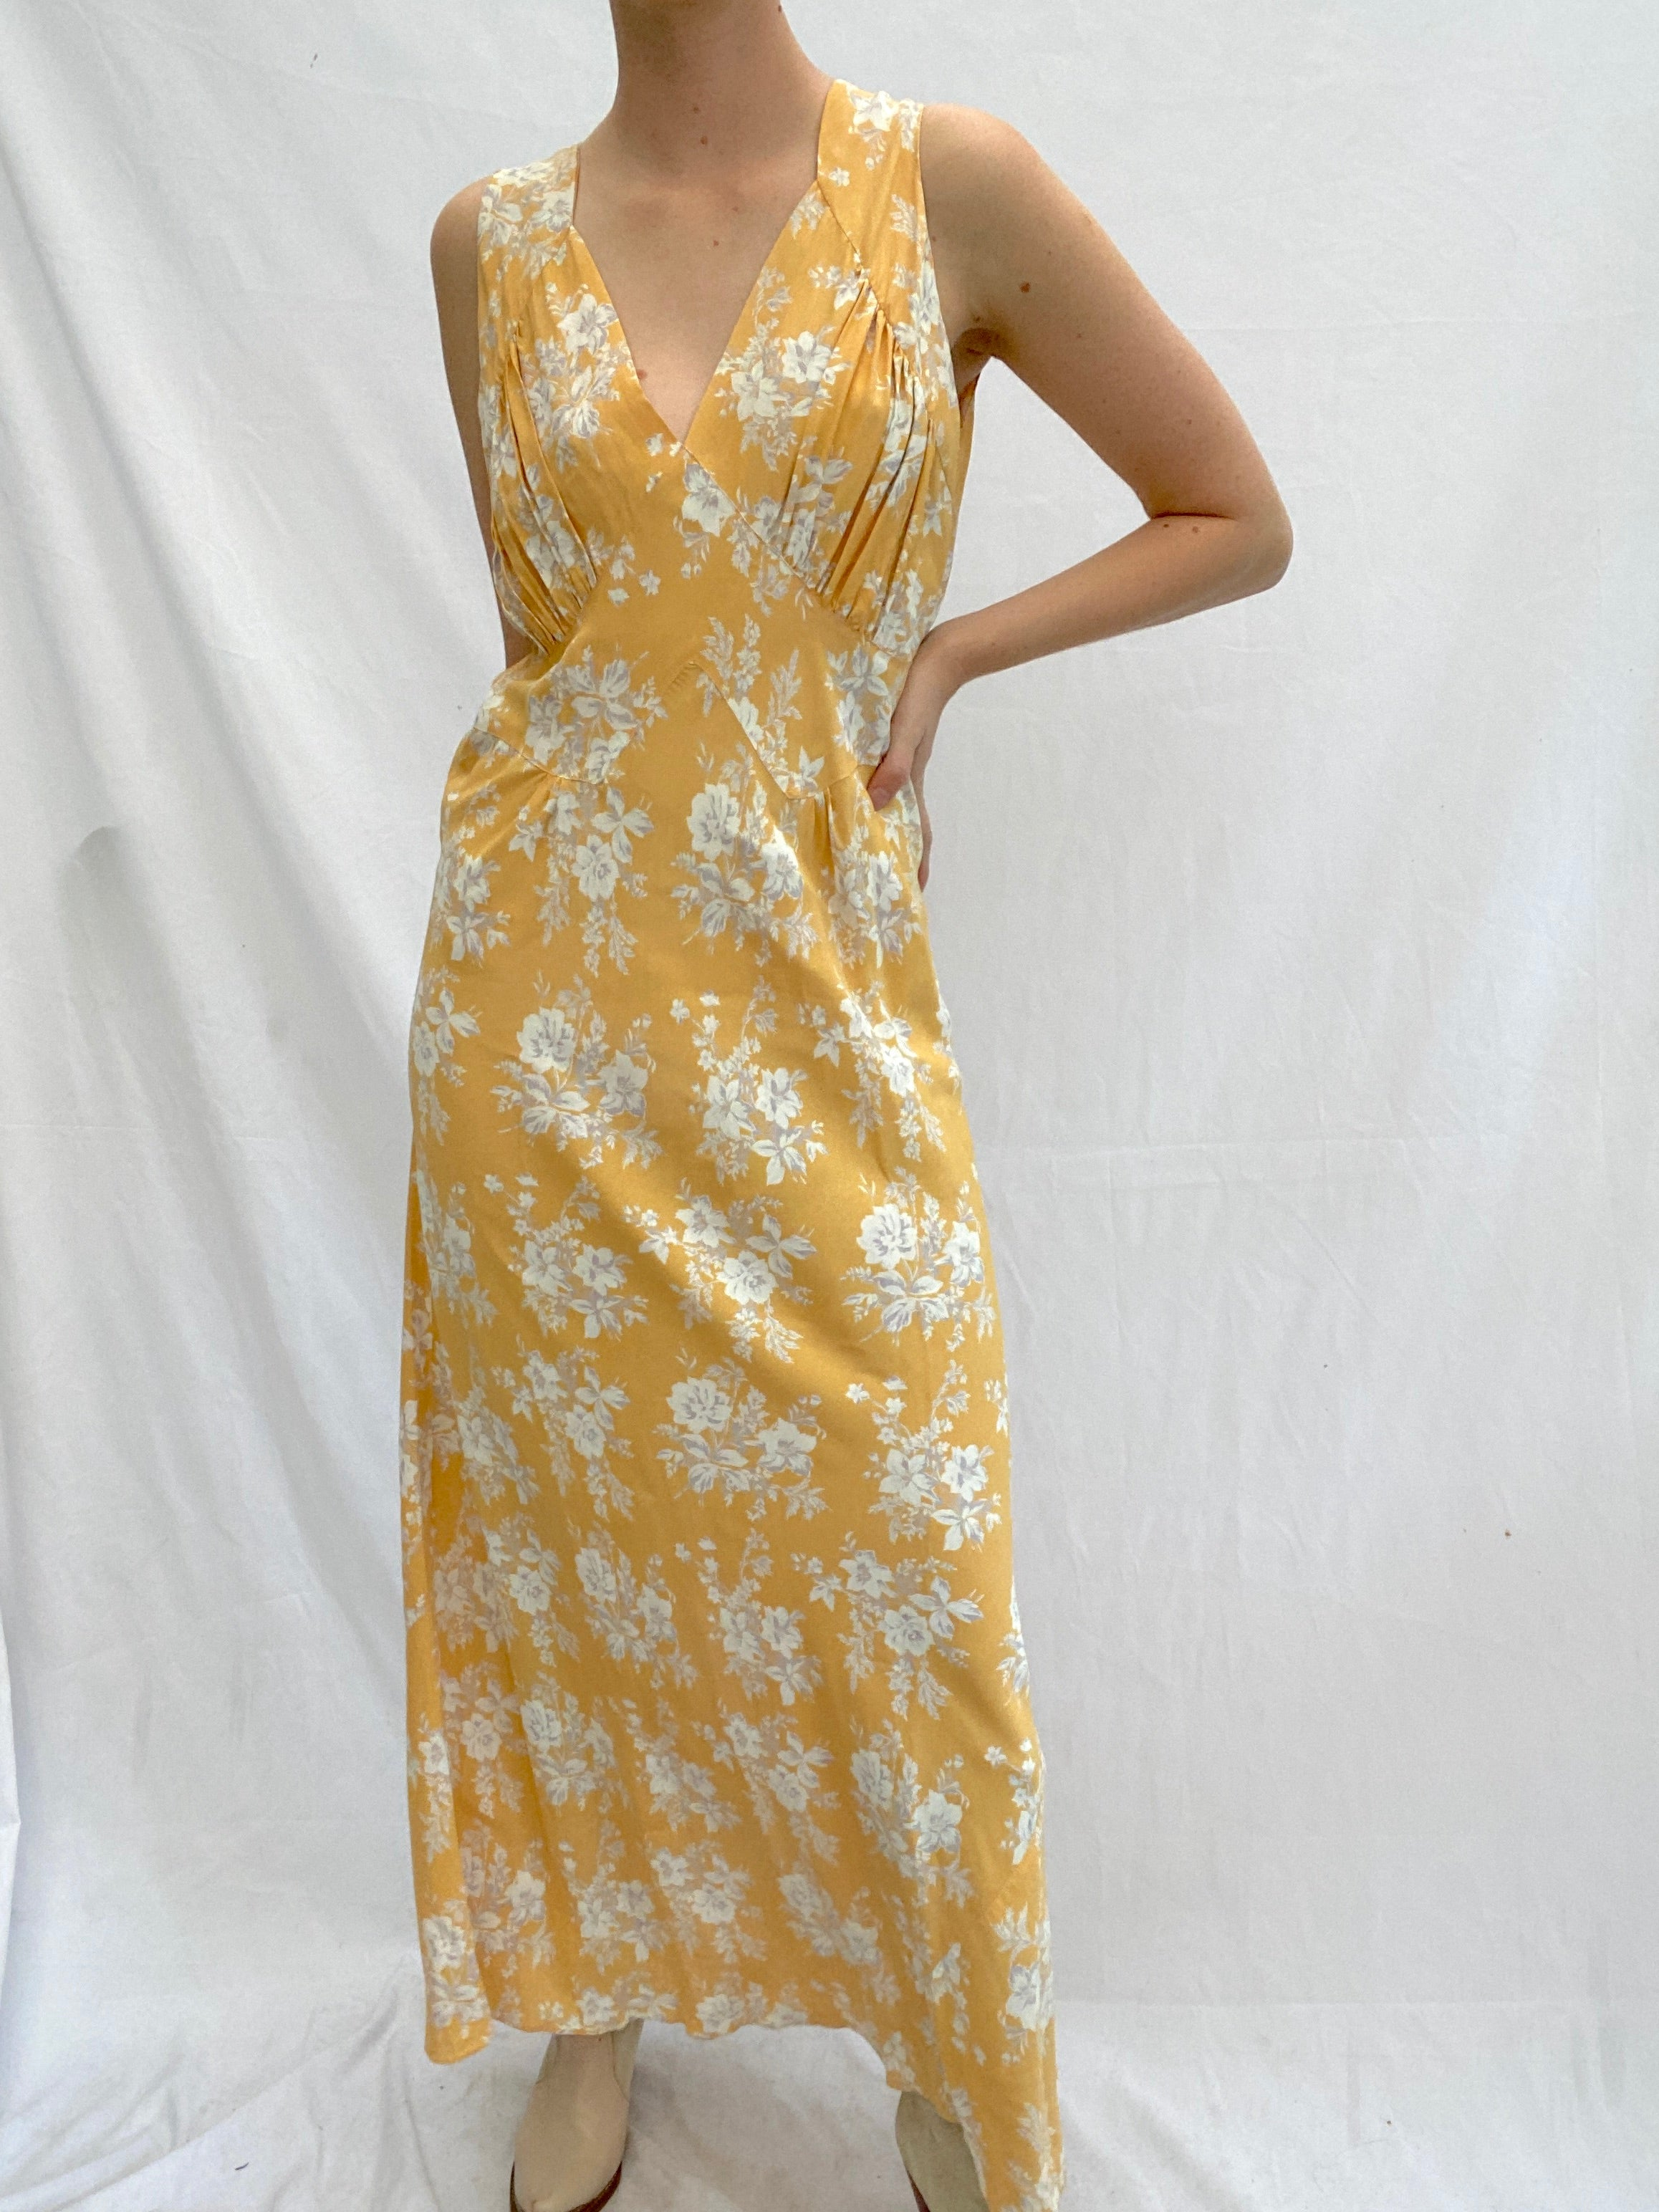 Autumn Yellow 1930's Slip with Grey Flowers